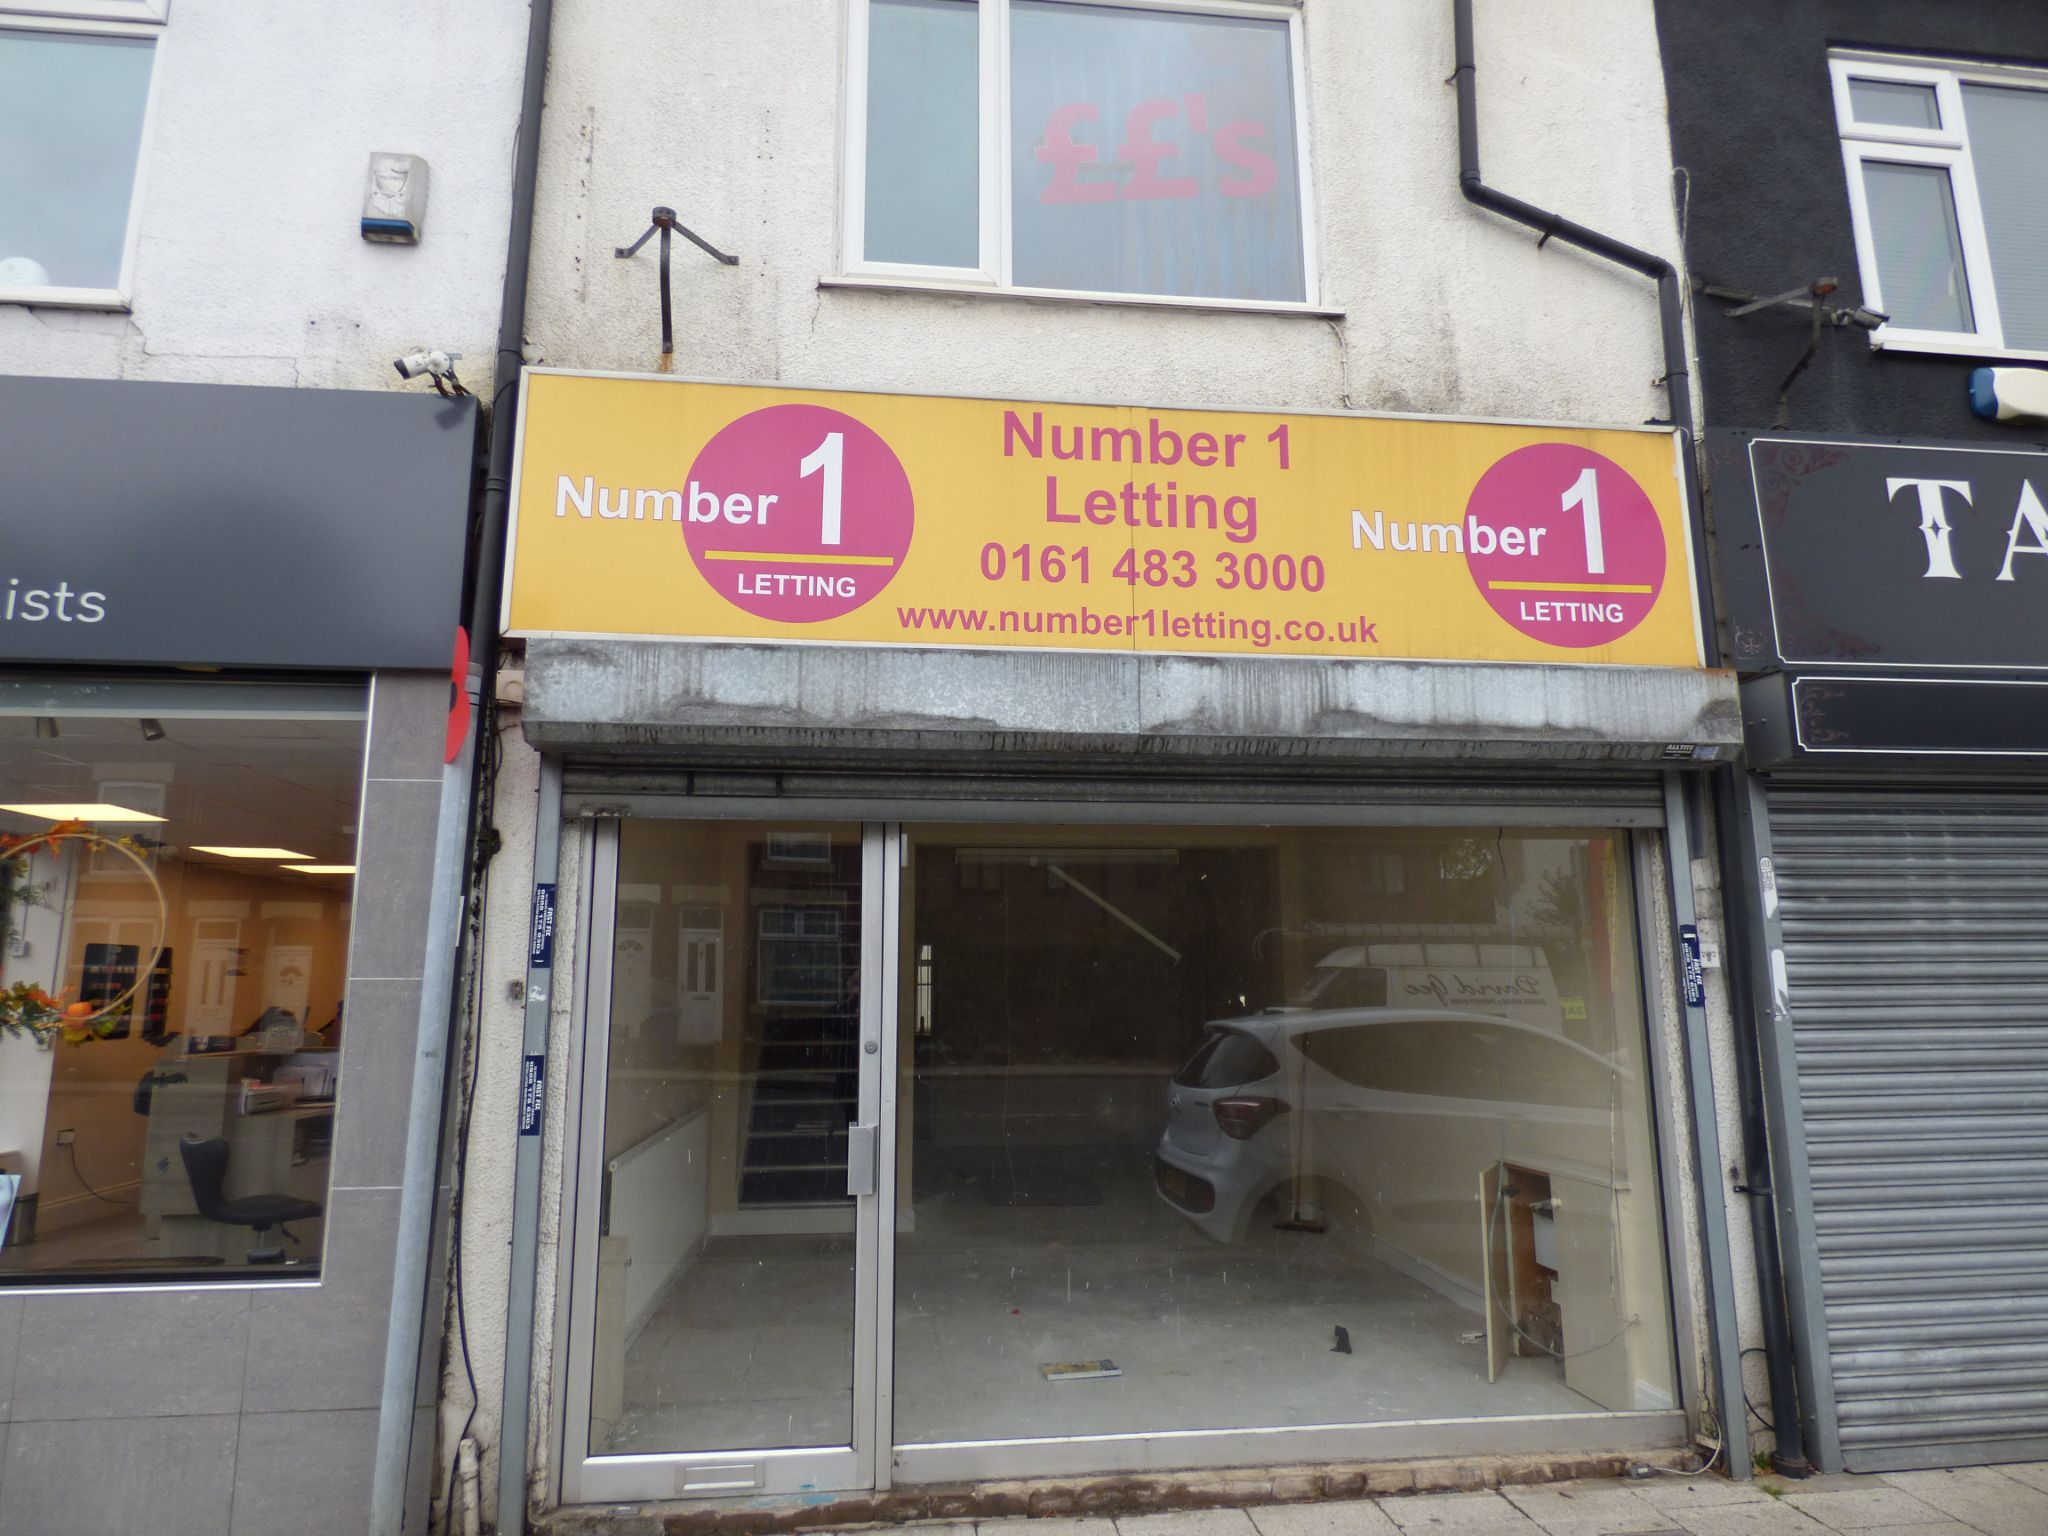 Retail Property (high Street) To Rent - Photograph 5